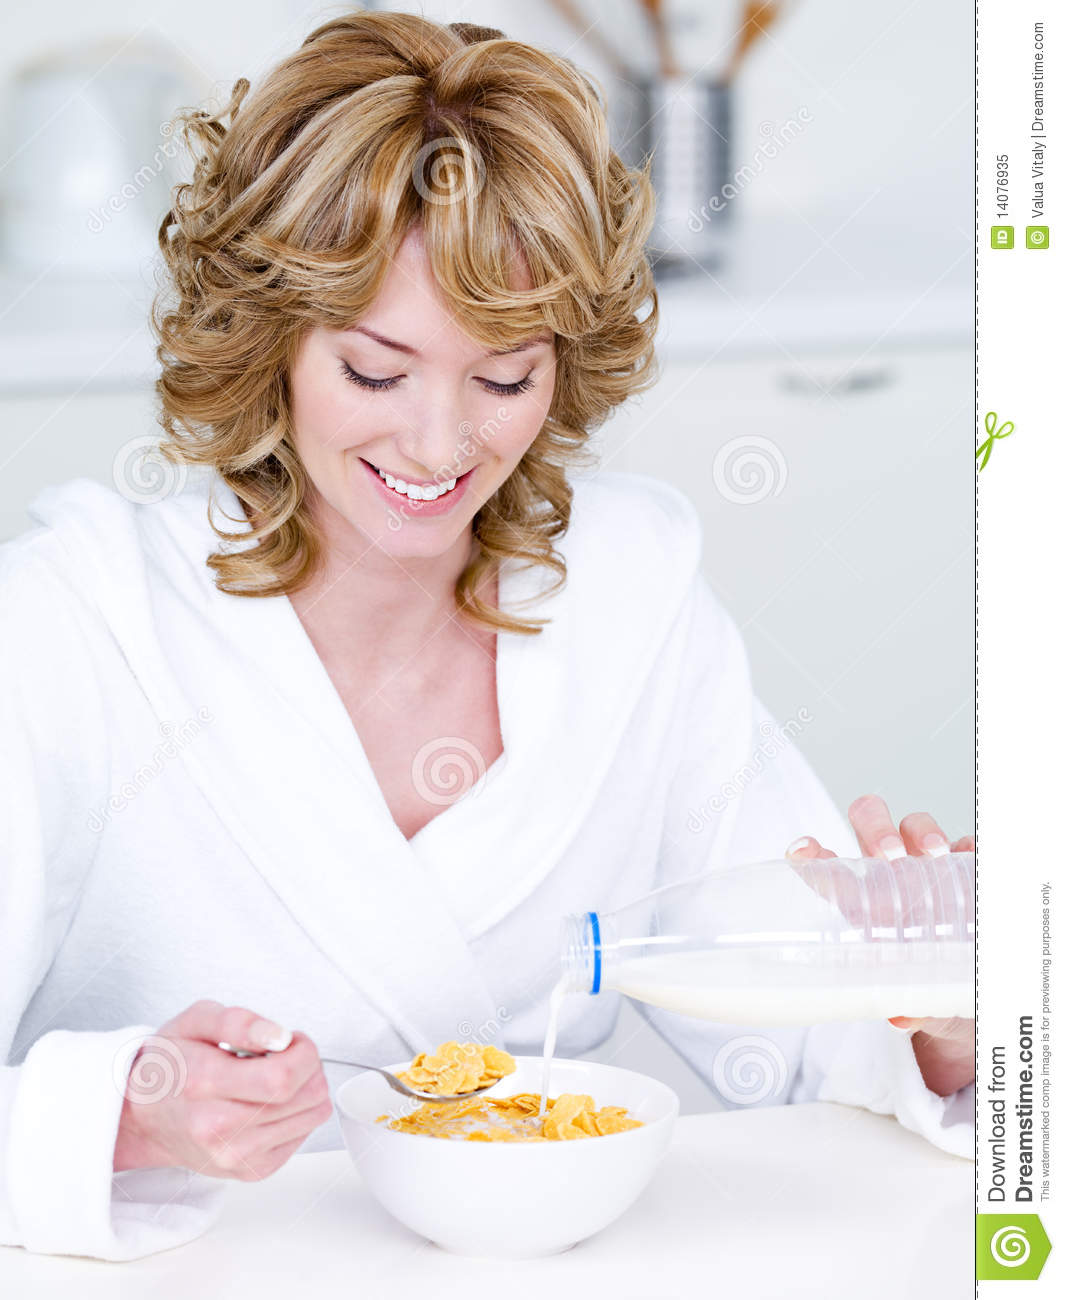 Woman eating corn flakes with milk